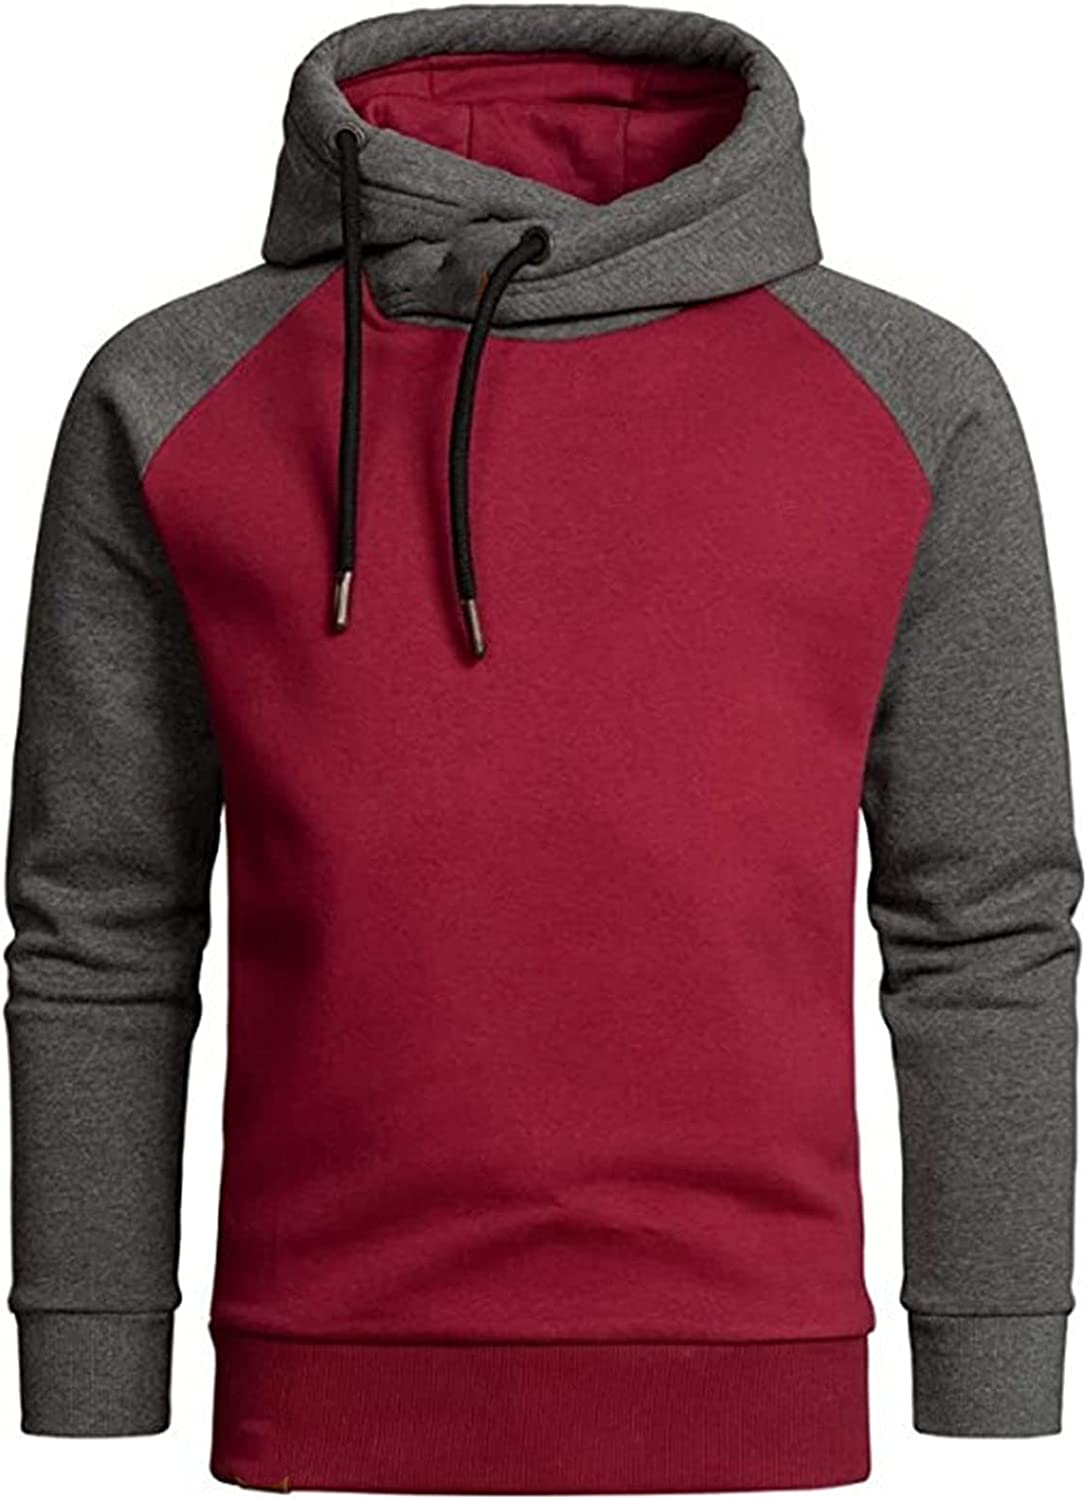 XXBR Hoodies for Mens, Cowl Neck Drawstring Hooded Sweatshirts Color Block Patchwork Sports Workout Casual Pullover